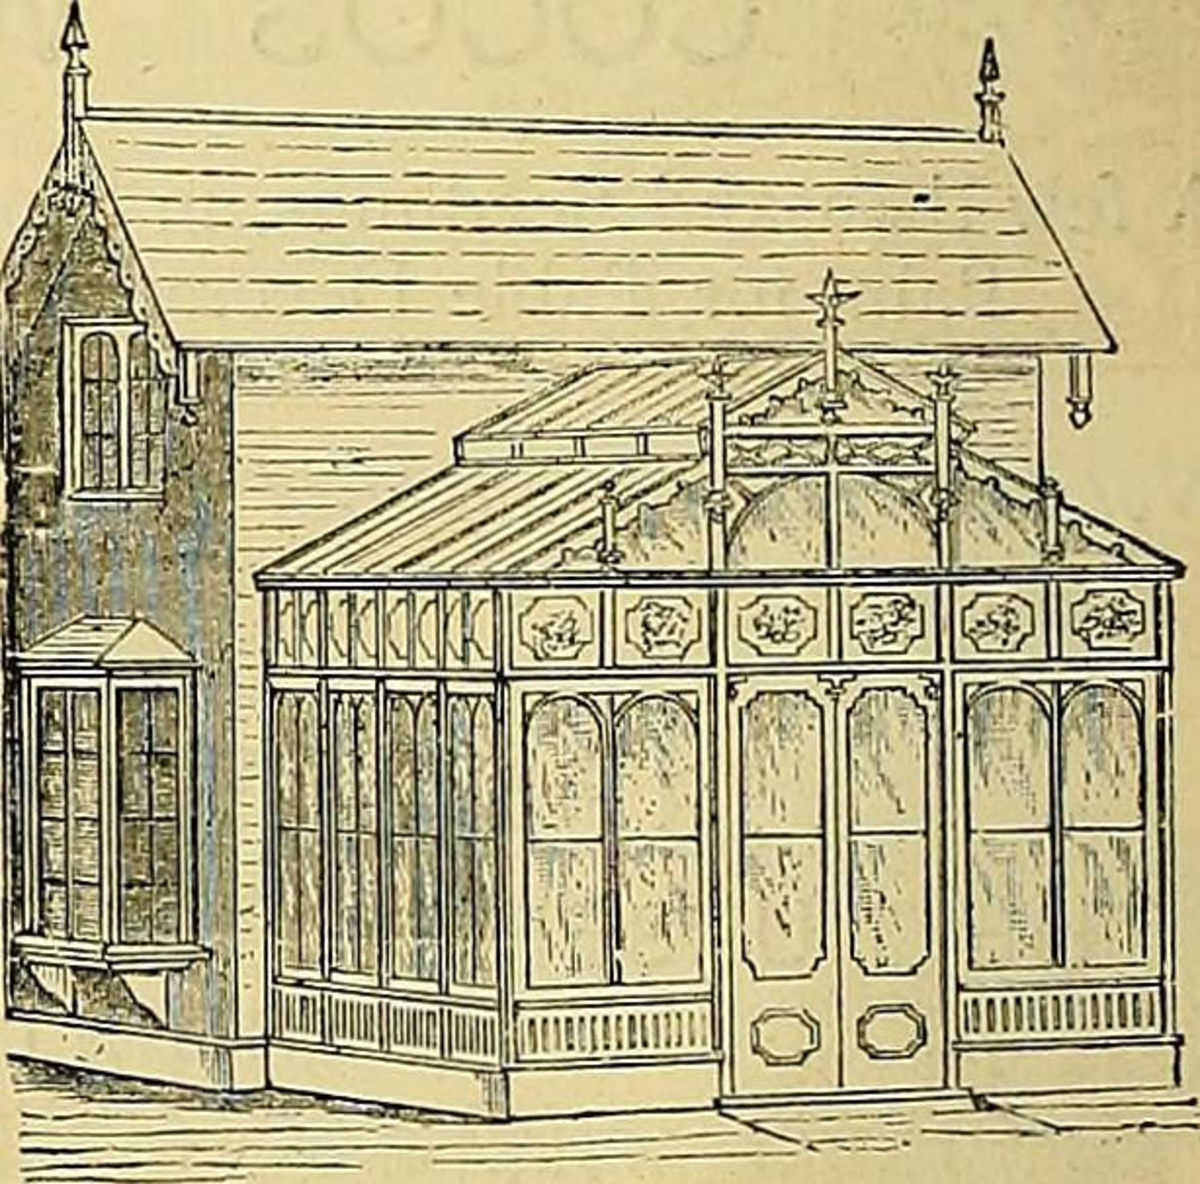 One of many older ornate lean to greenhouses of the 18th century.